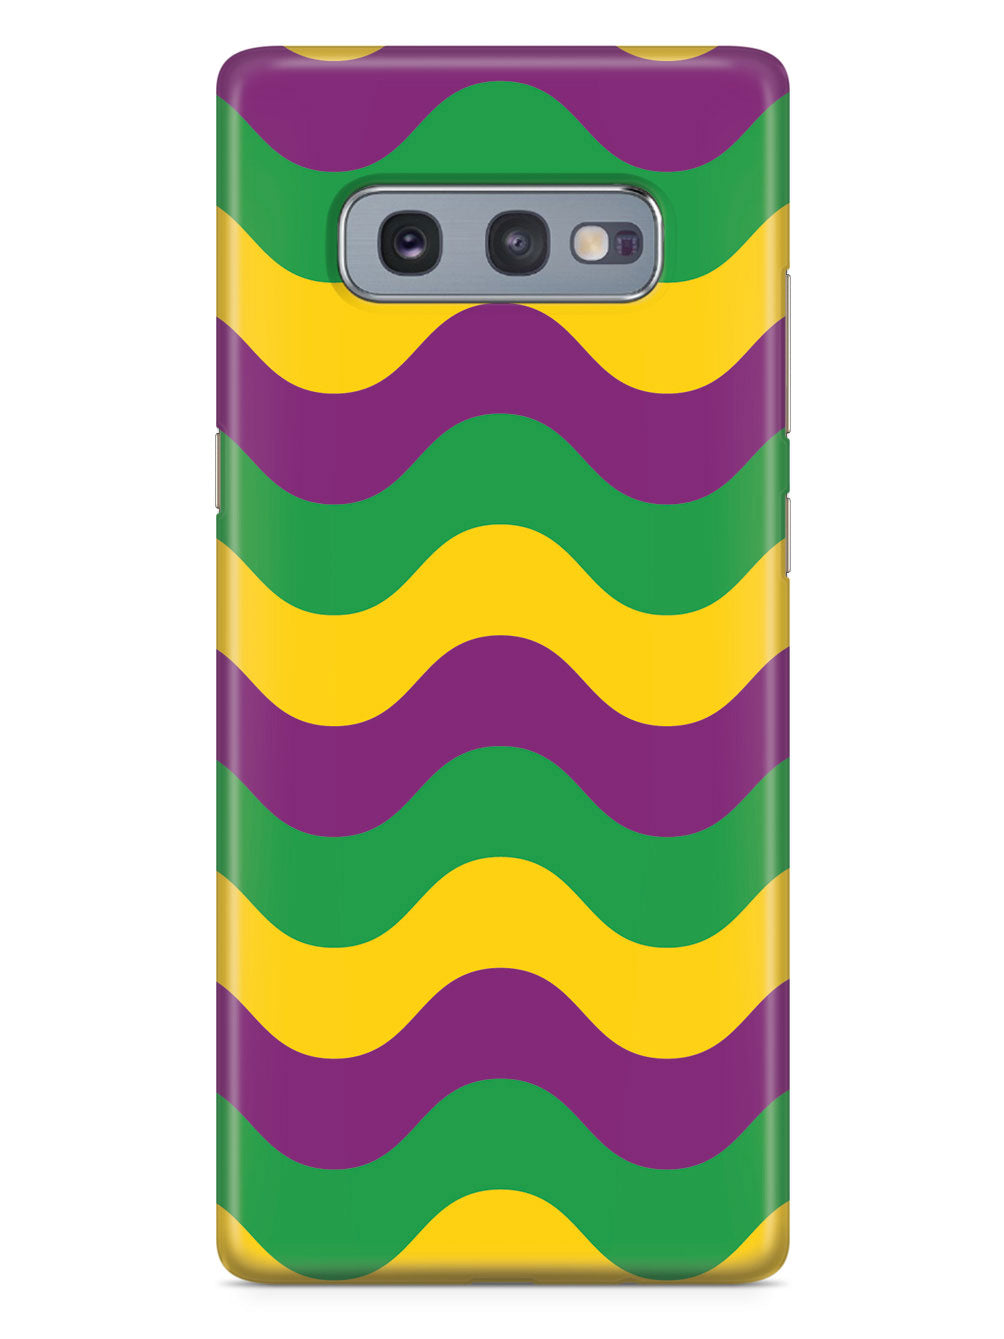 Mardi Gras Wave Pattern - White Case